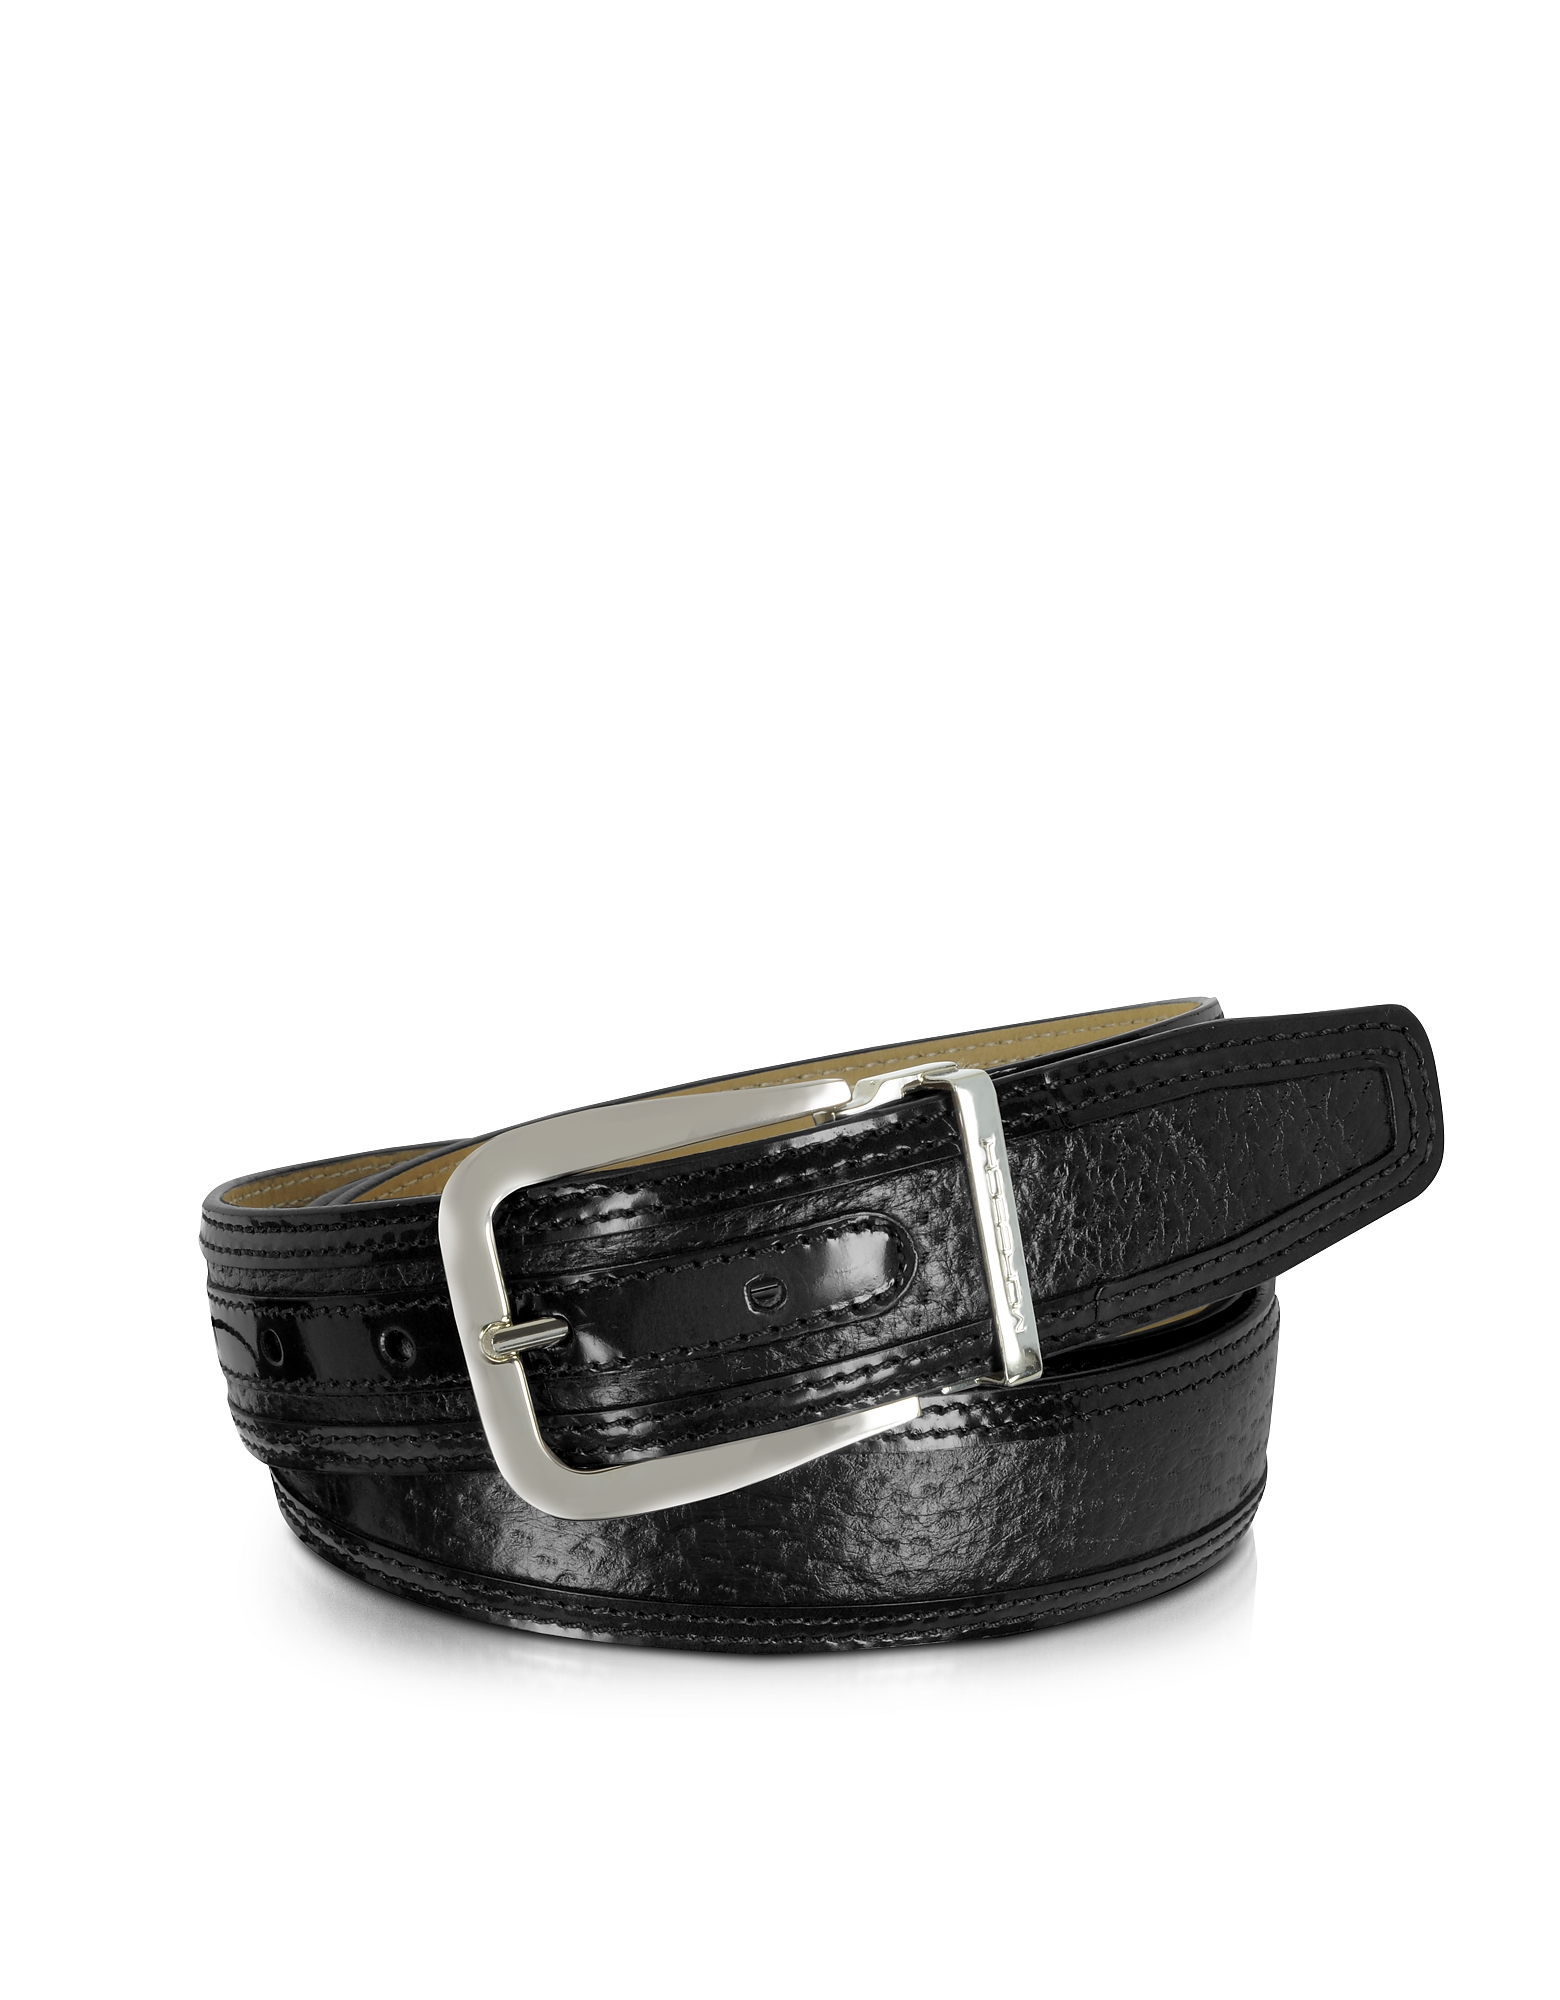 MORESCHI LIONE BLACK PECCARY AND LEATHER BELT